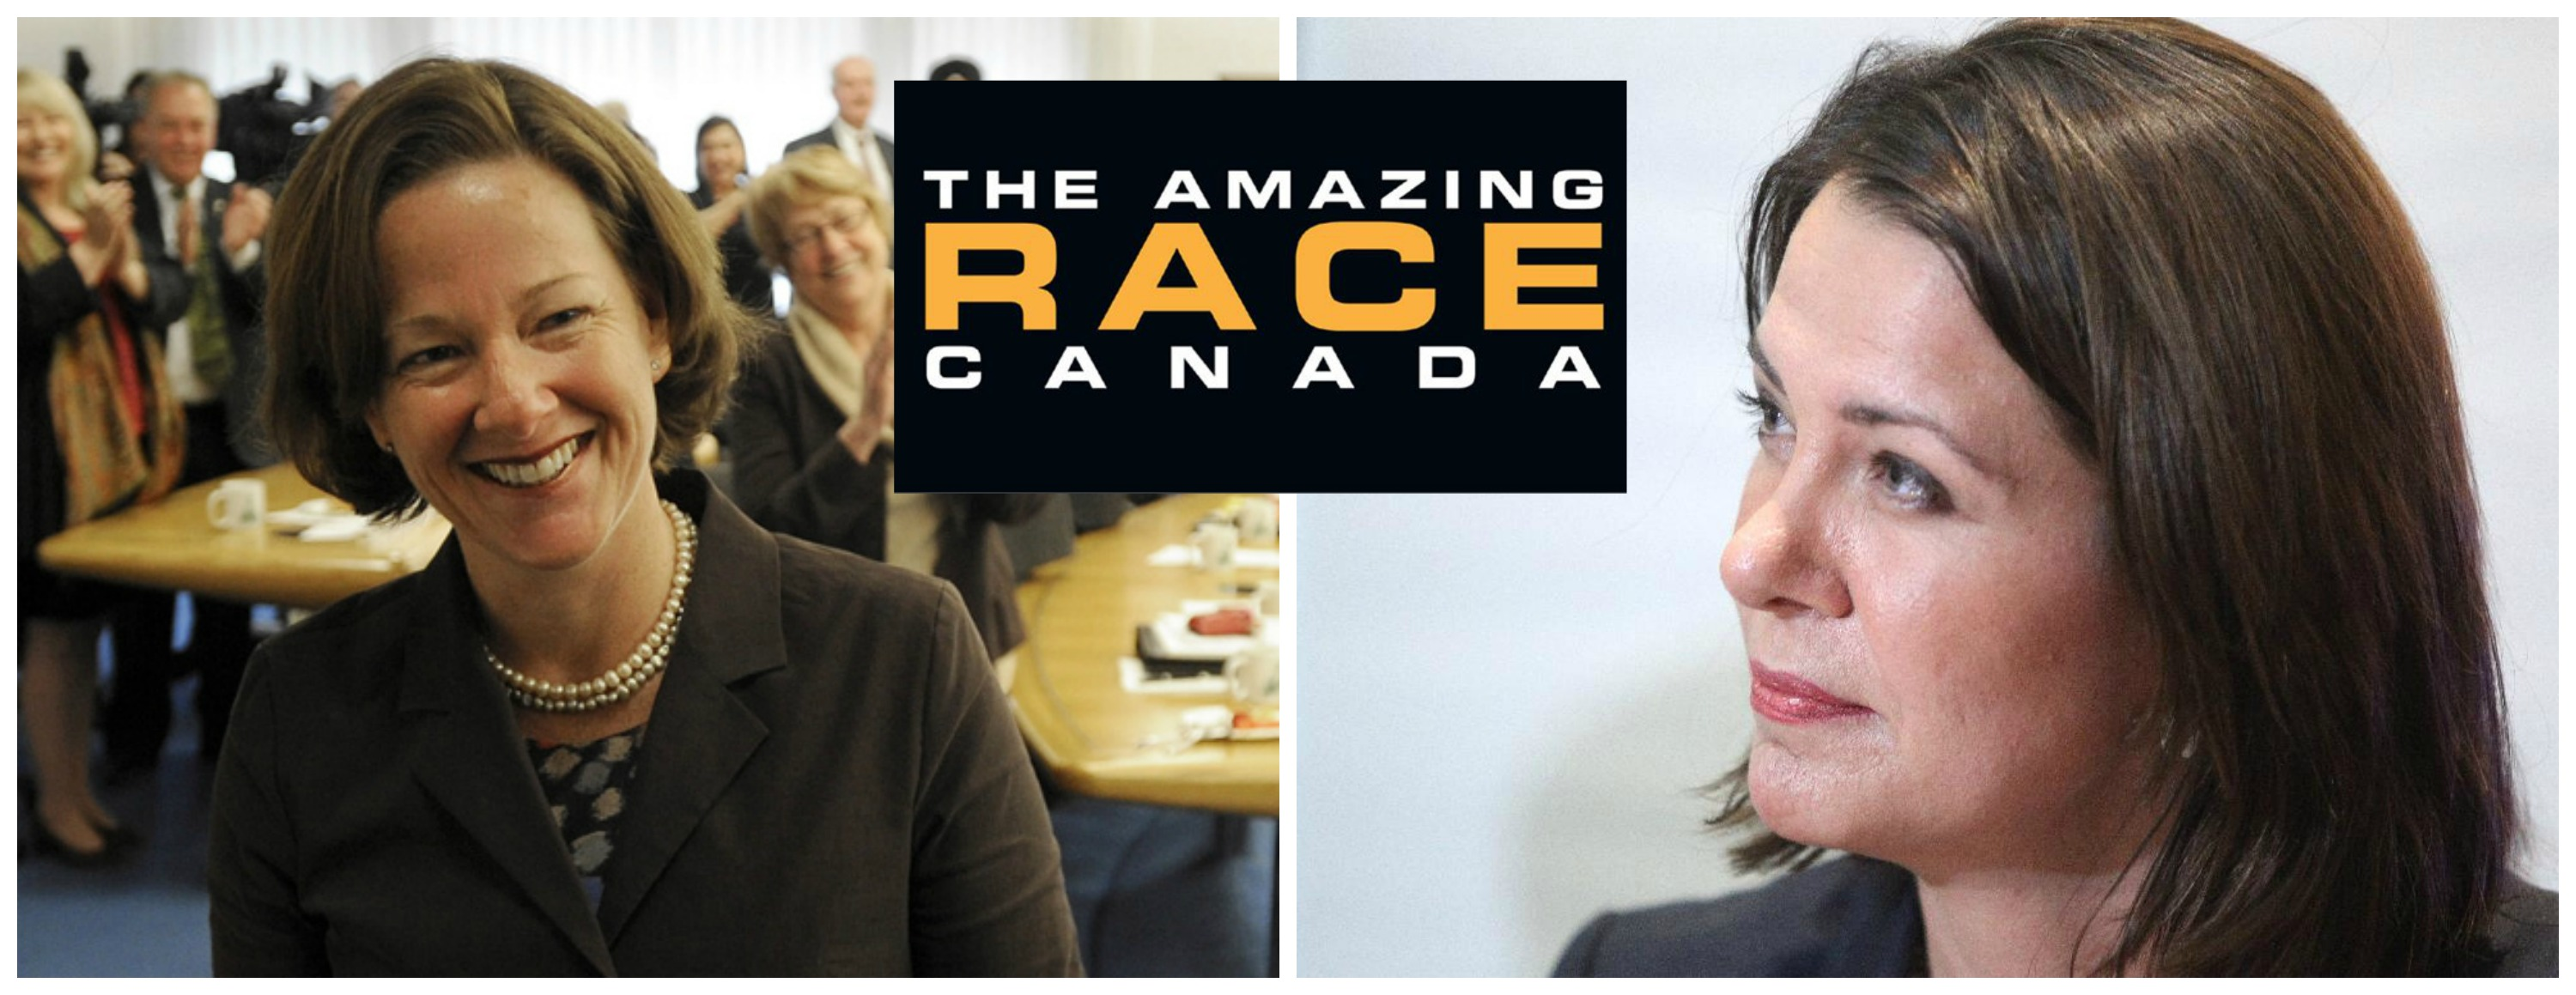 Team Redford and Smith confirmed for The Amazing Race Canada!